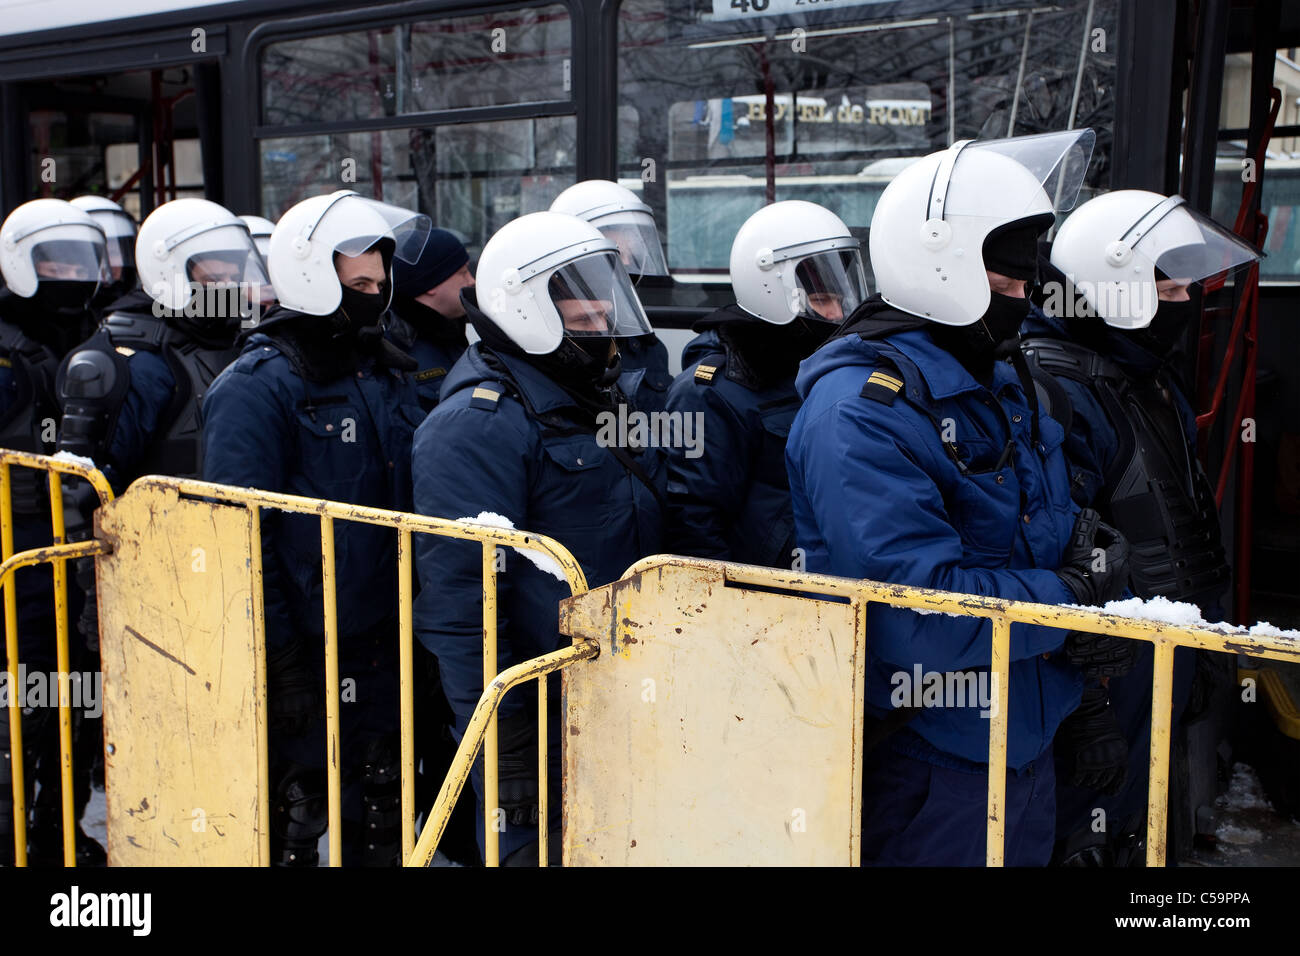 Riot police officers ready to prevent provocations at Commemoration of the Latvian Waffen SS unit or Legionnaires. - Stock Image